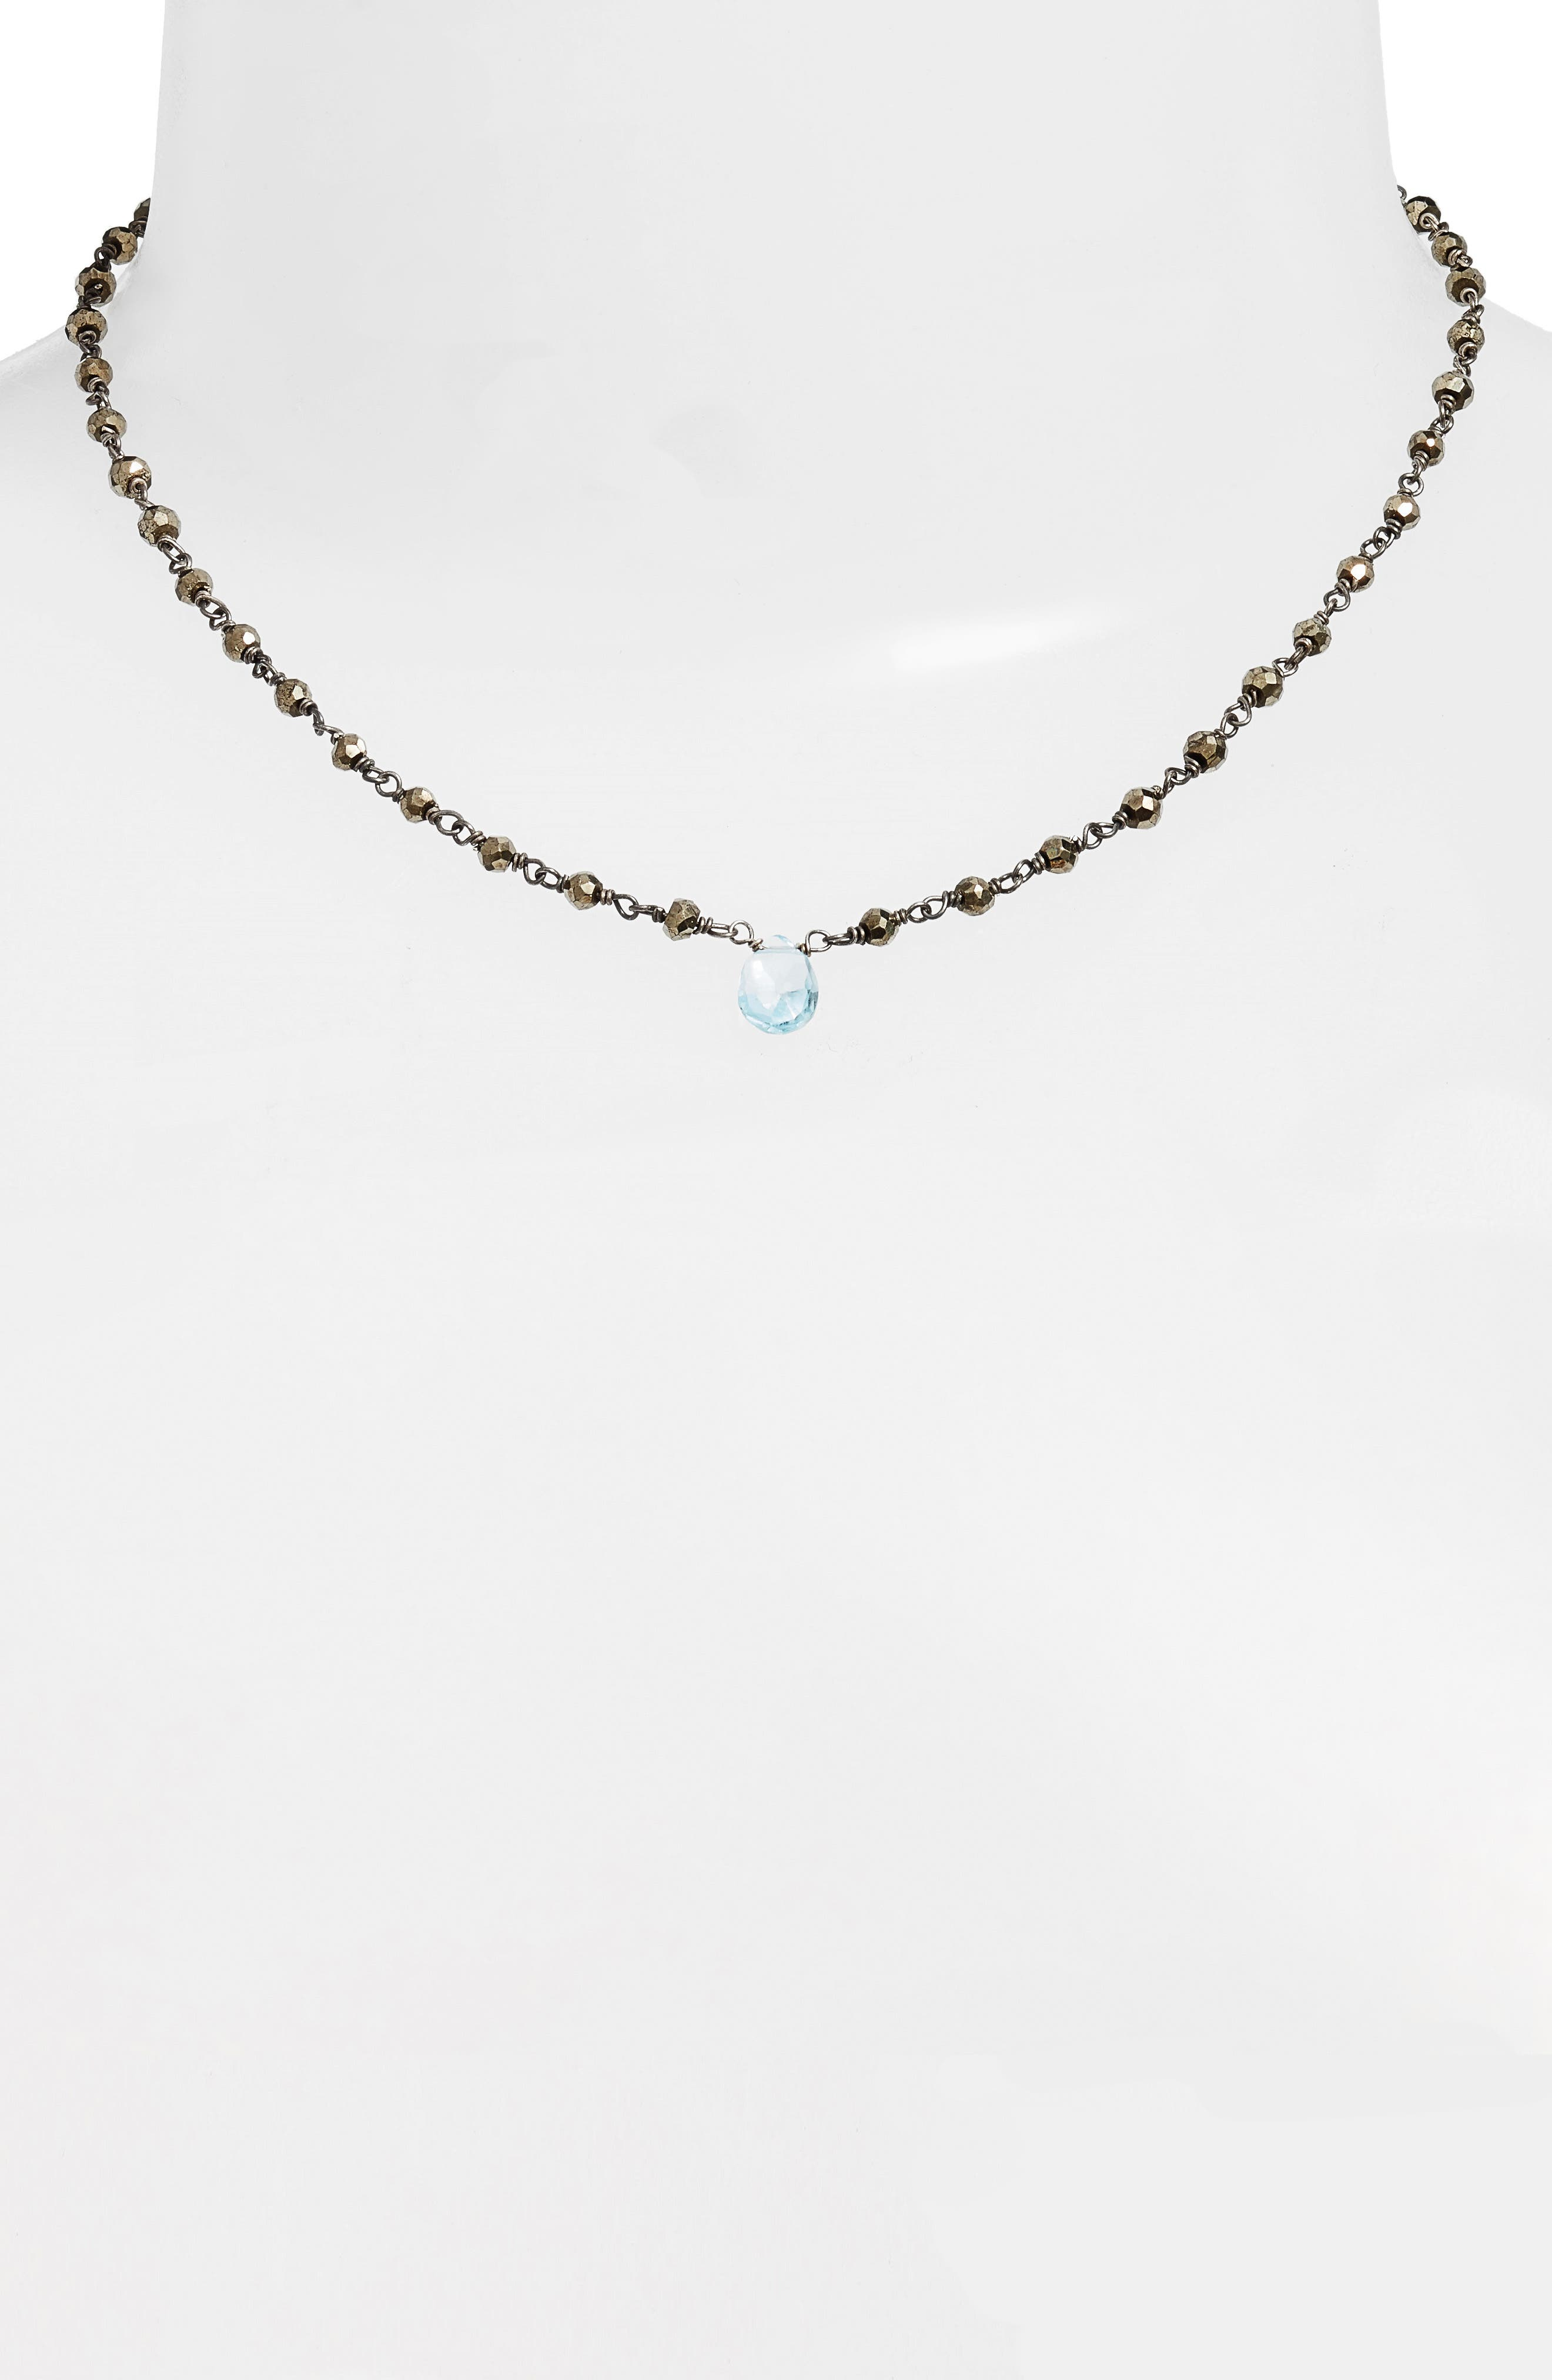 Beaded Collar Necklace,                             Alternate thumbnail 2, color,                             PYRITE/ BLUE TOPAZ